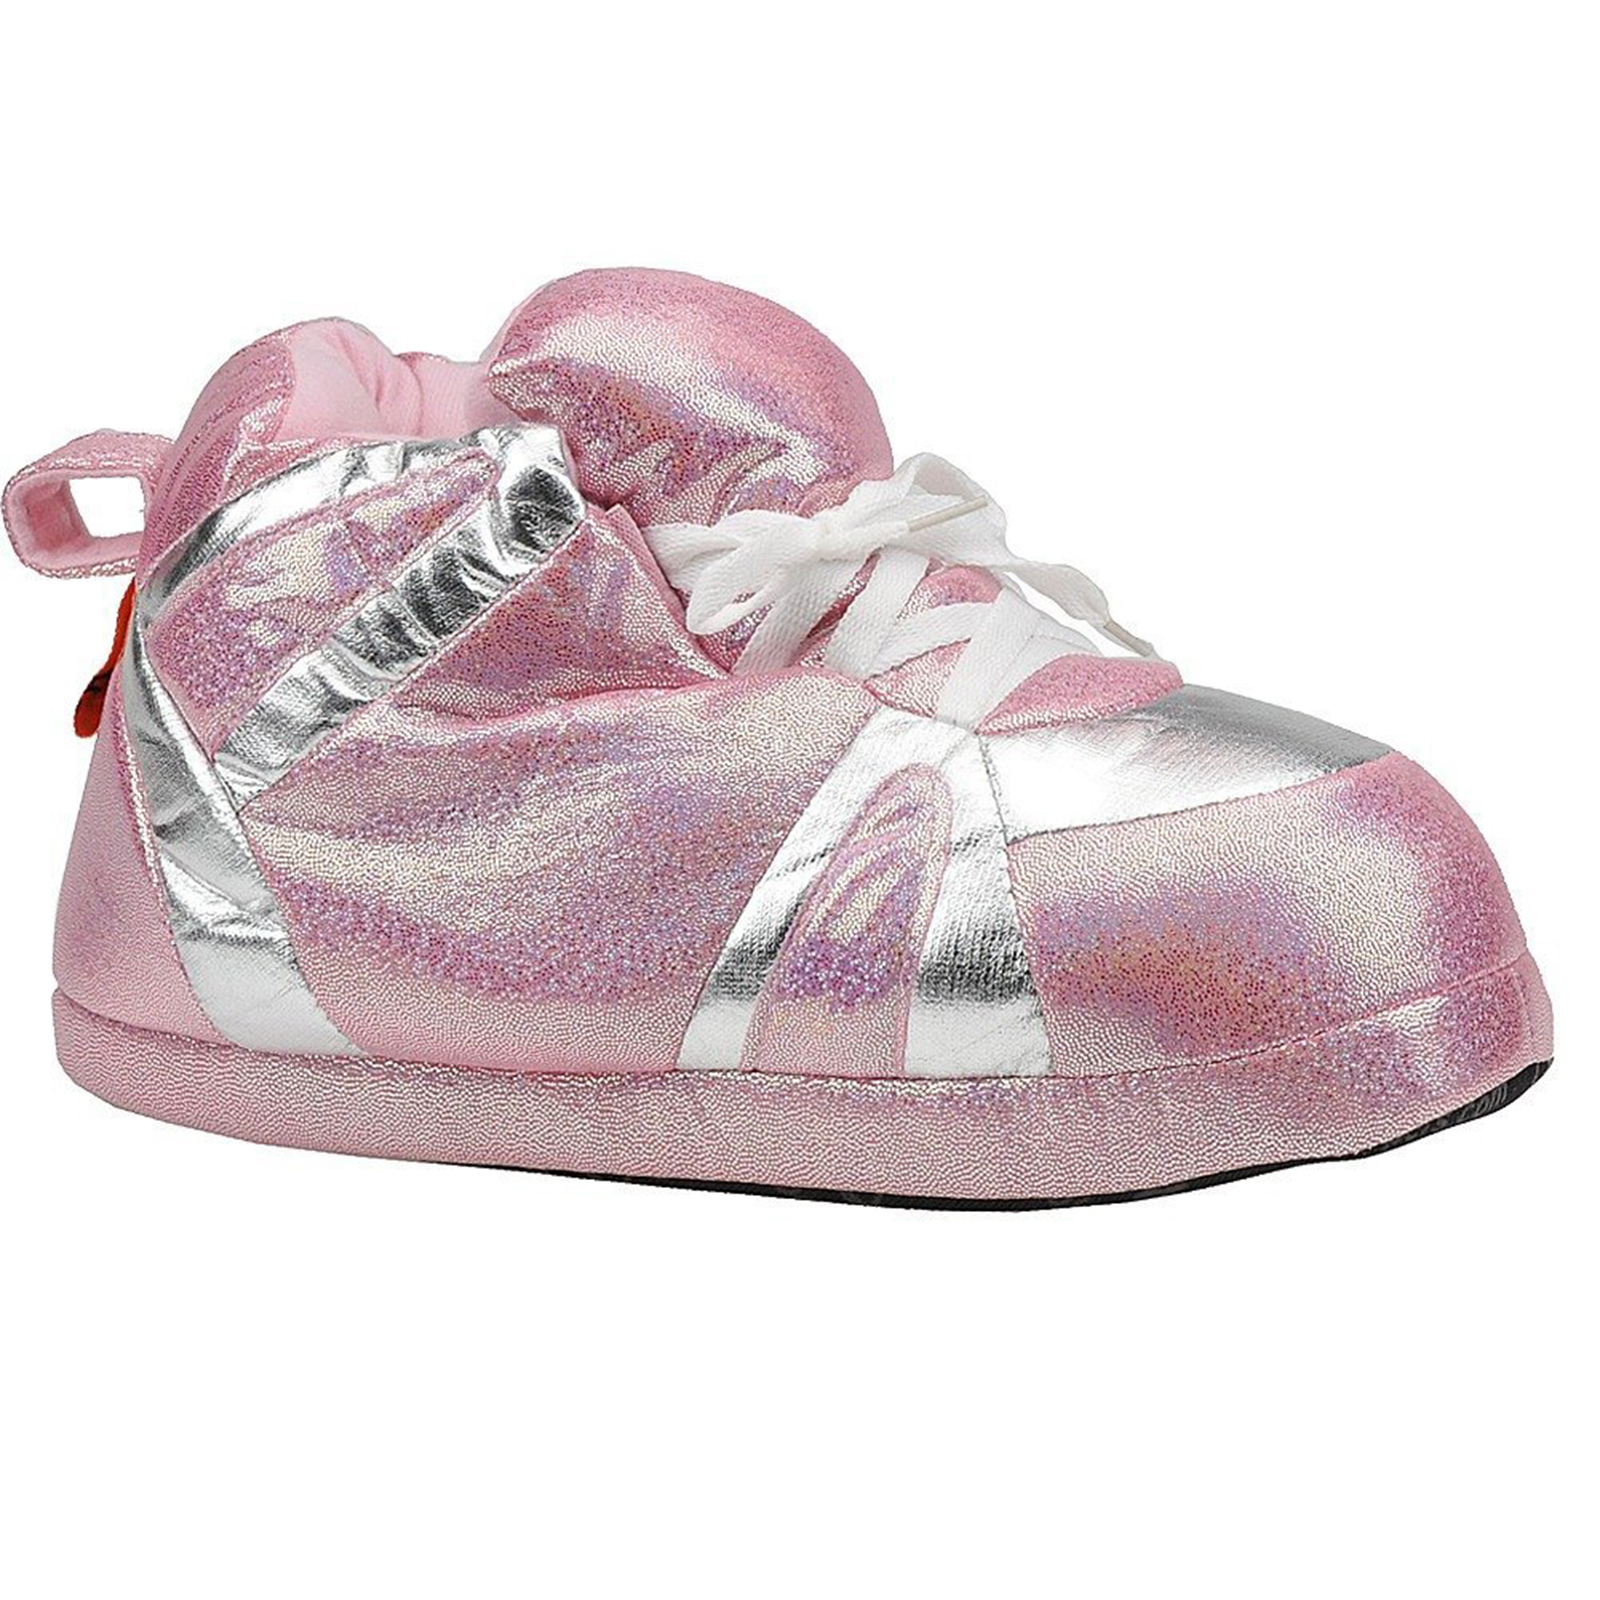 comfy womens sequined snooki house shoes slippers ebay